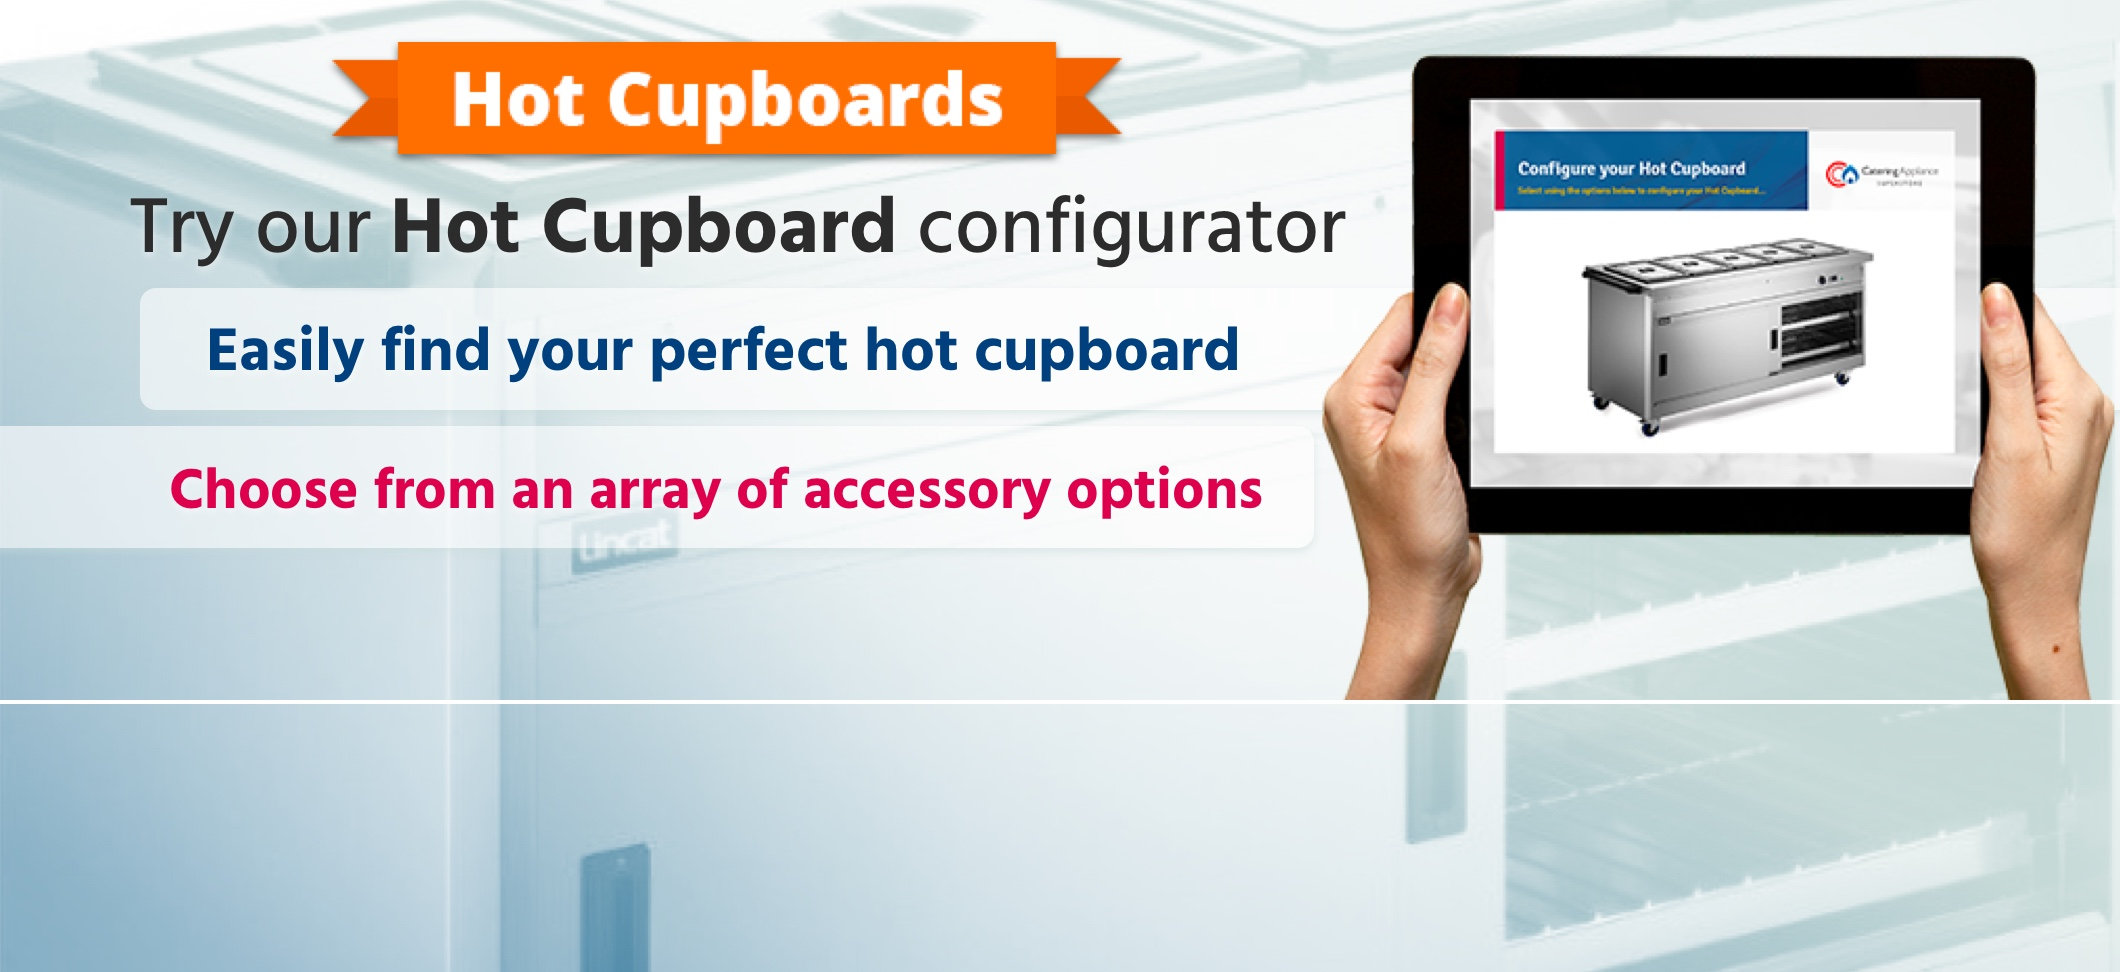 Hot Cupboards, Try our Hot Cupboard configurator, Easily find your perfect hot cupboard,  Configurator